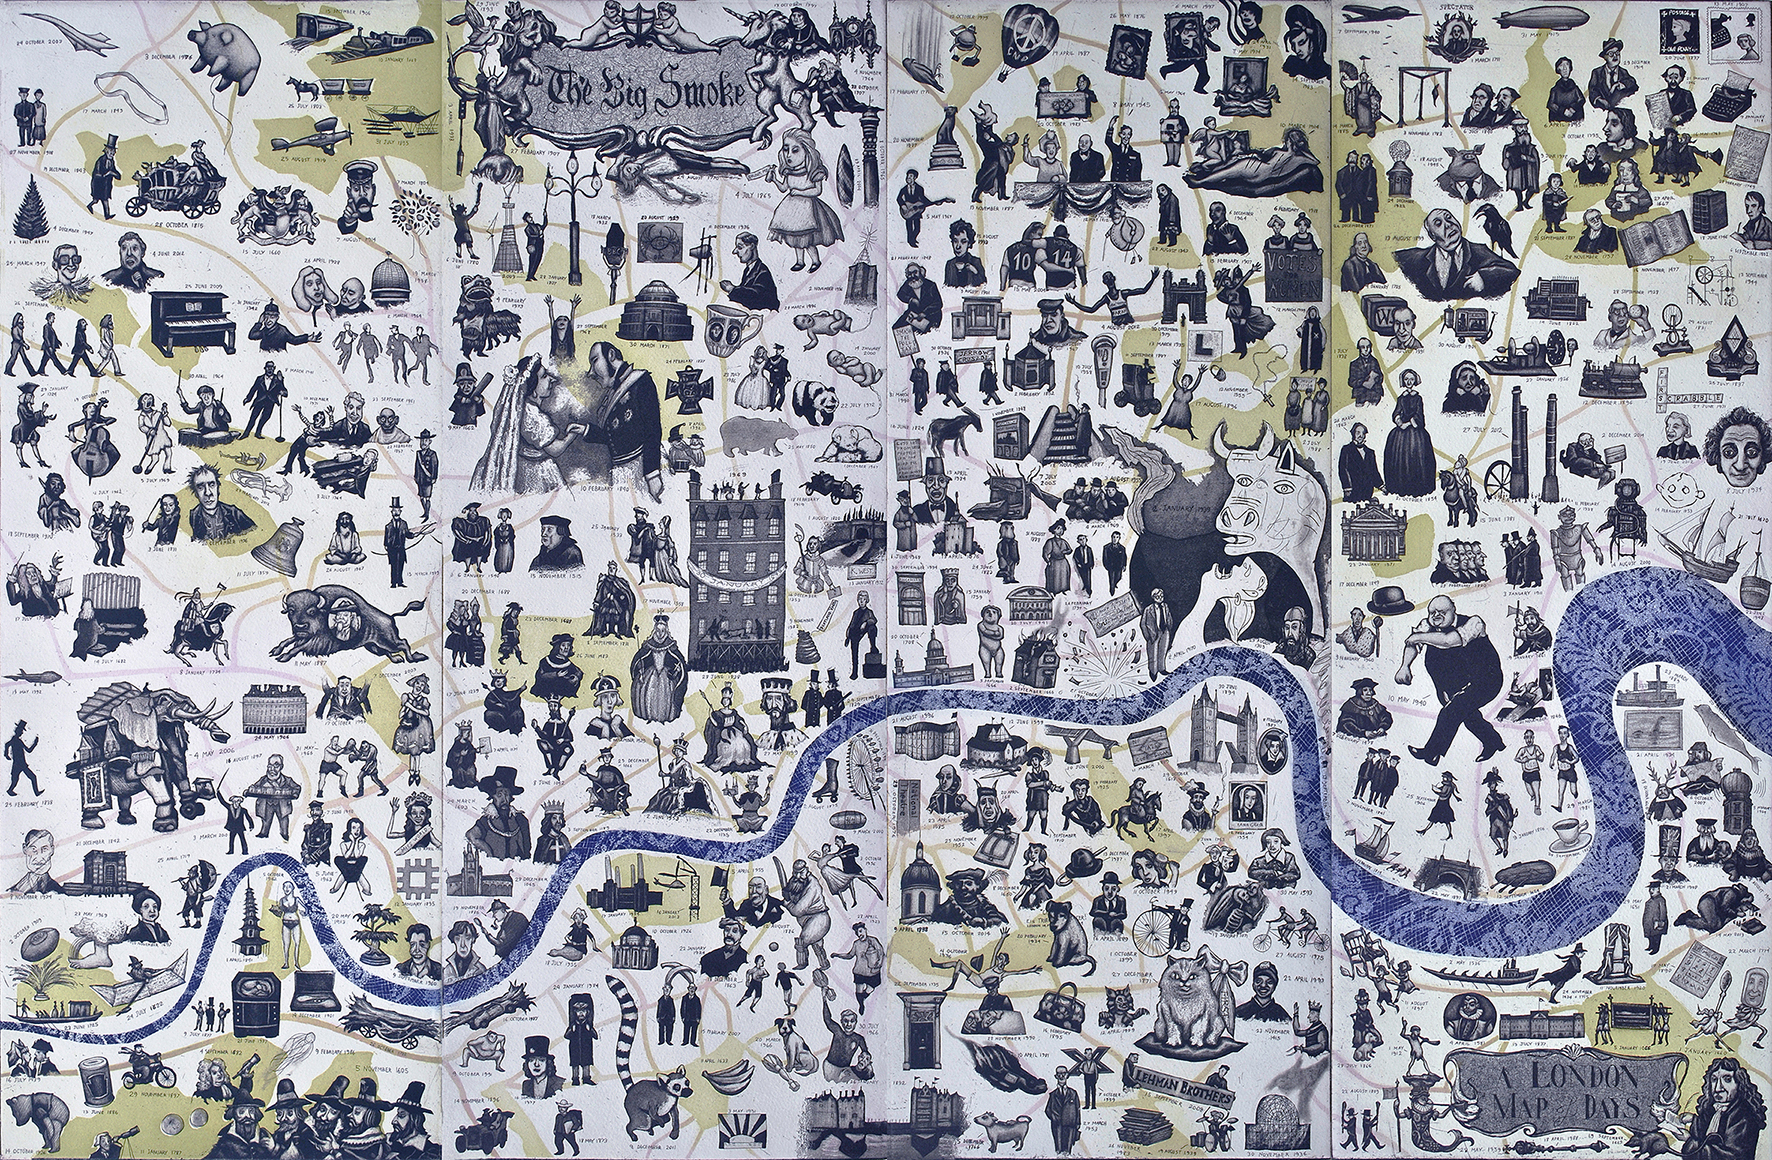 A London Map of Days  66 x 100 cm   etching   SOLD OUT